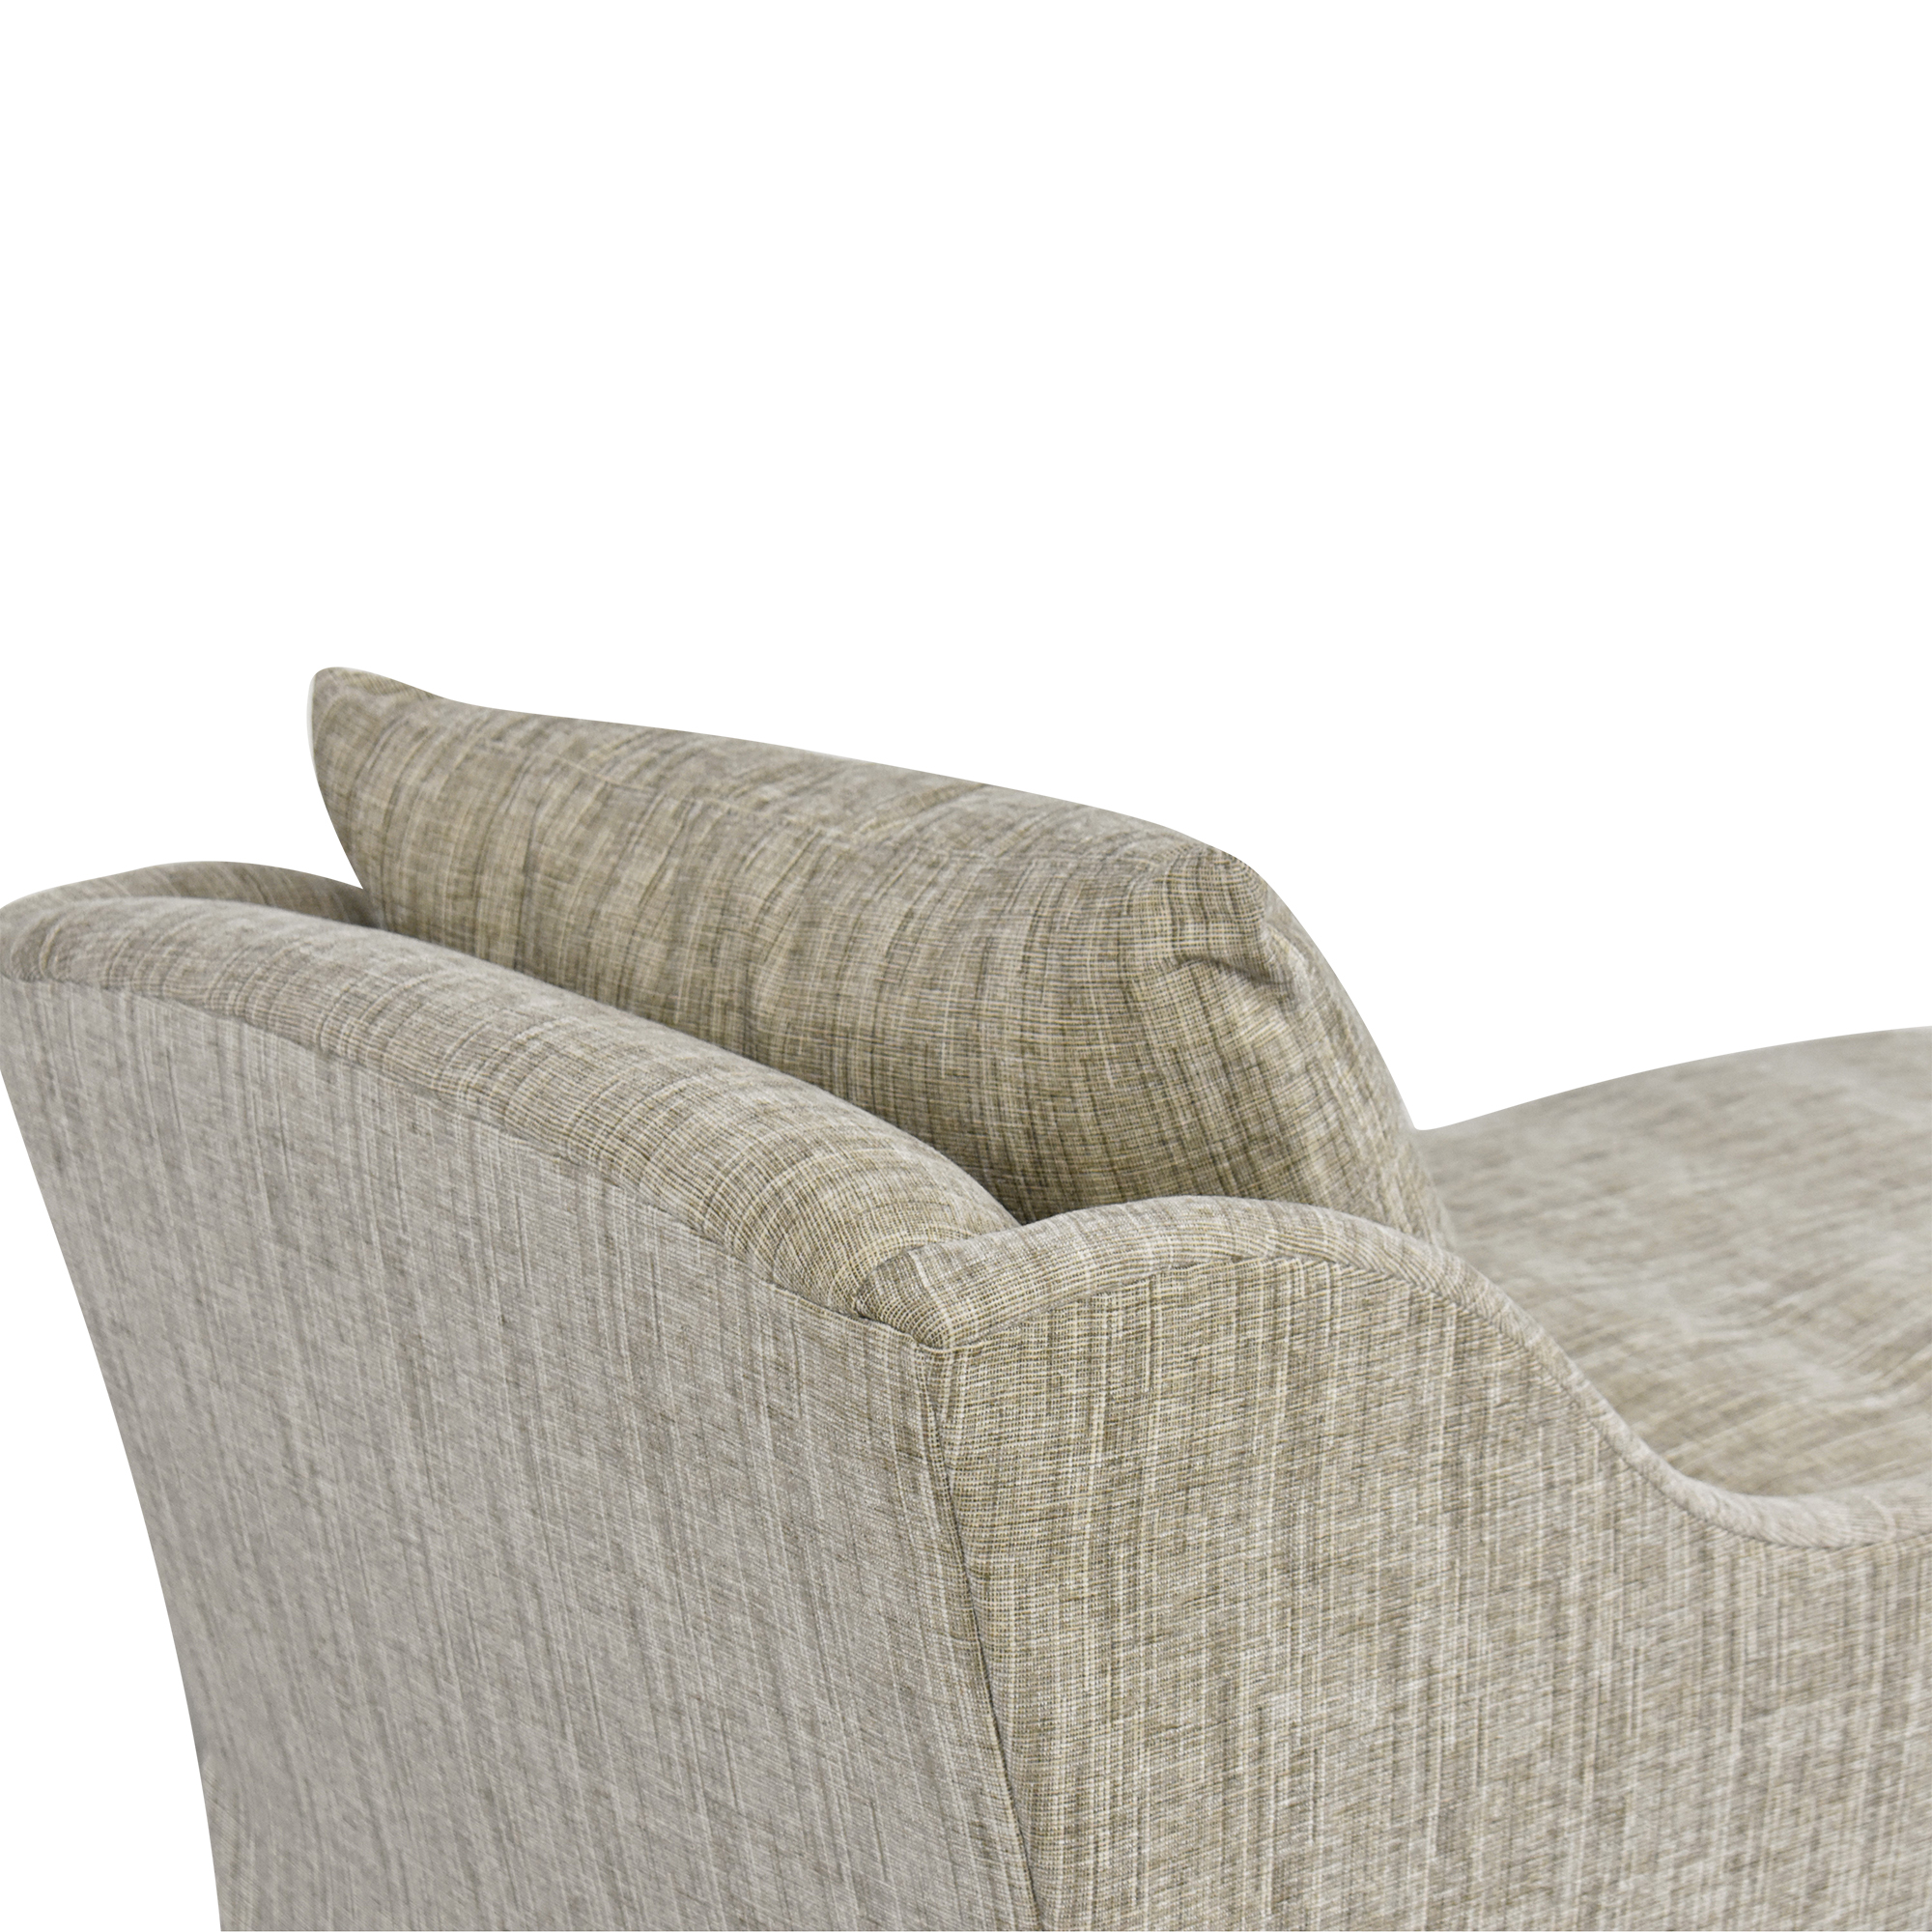 Country Willow Evalani Slipcovered Chaise sale